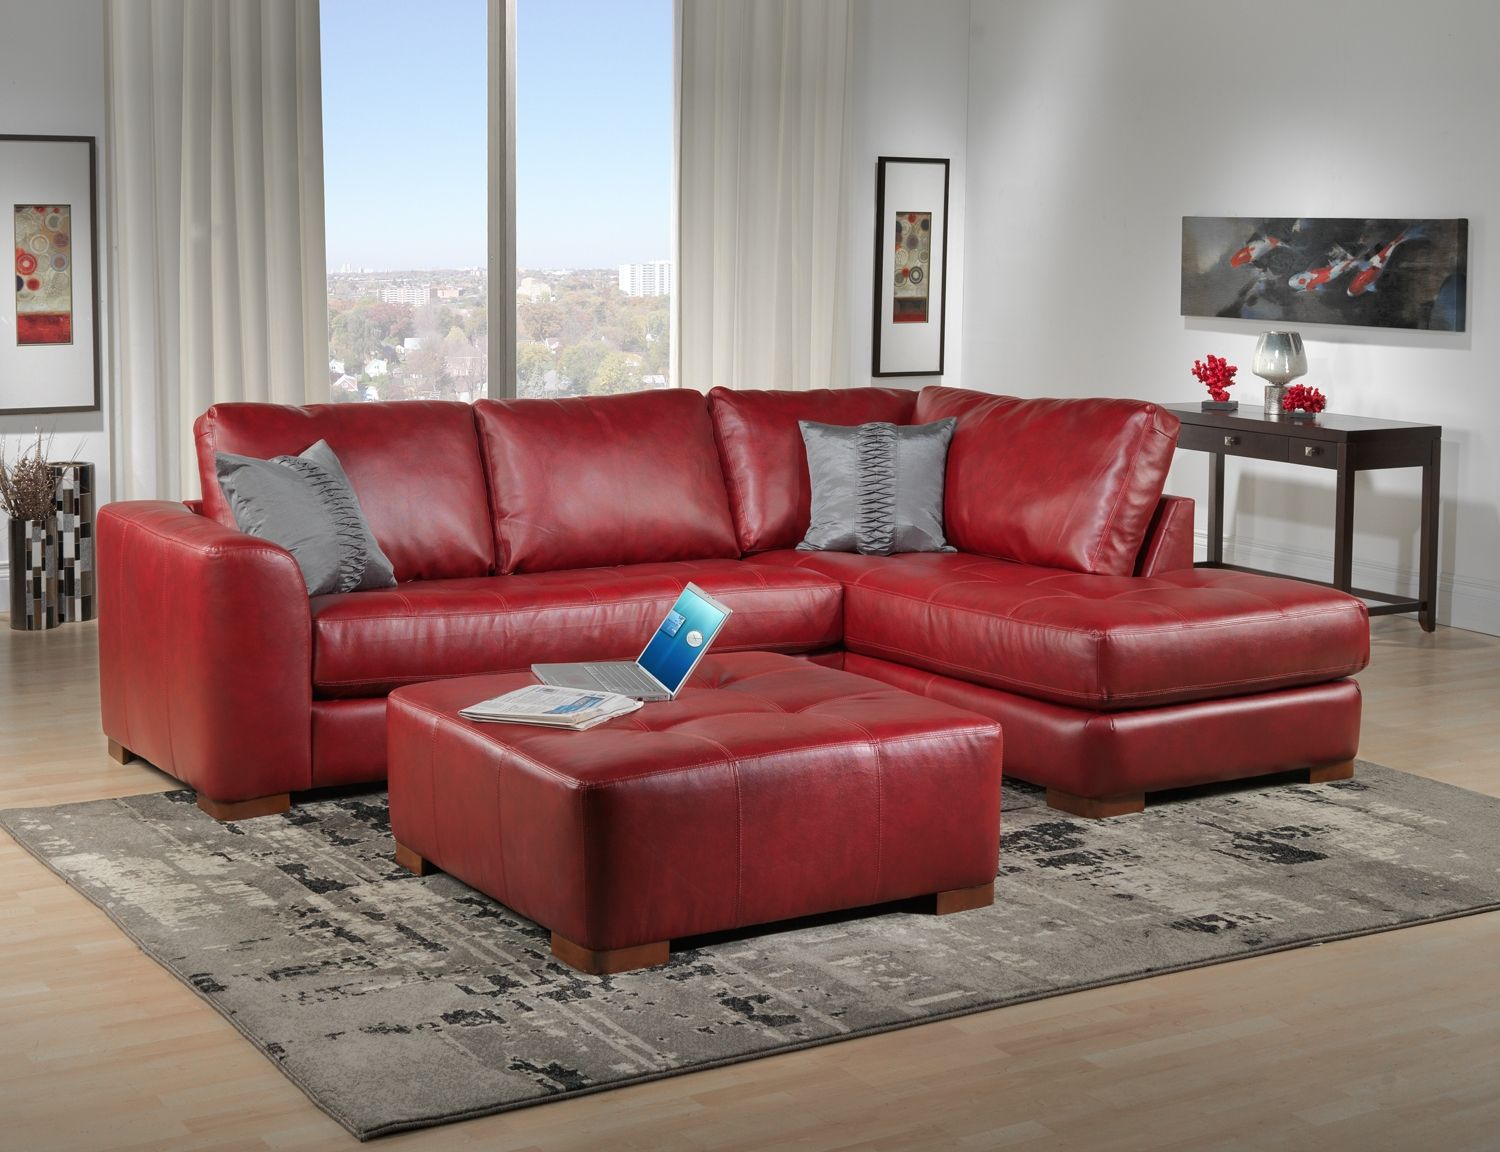 Pin By Cathy Baylor On Decorating Living Room Leather Sofa Sofa